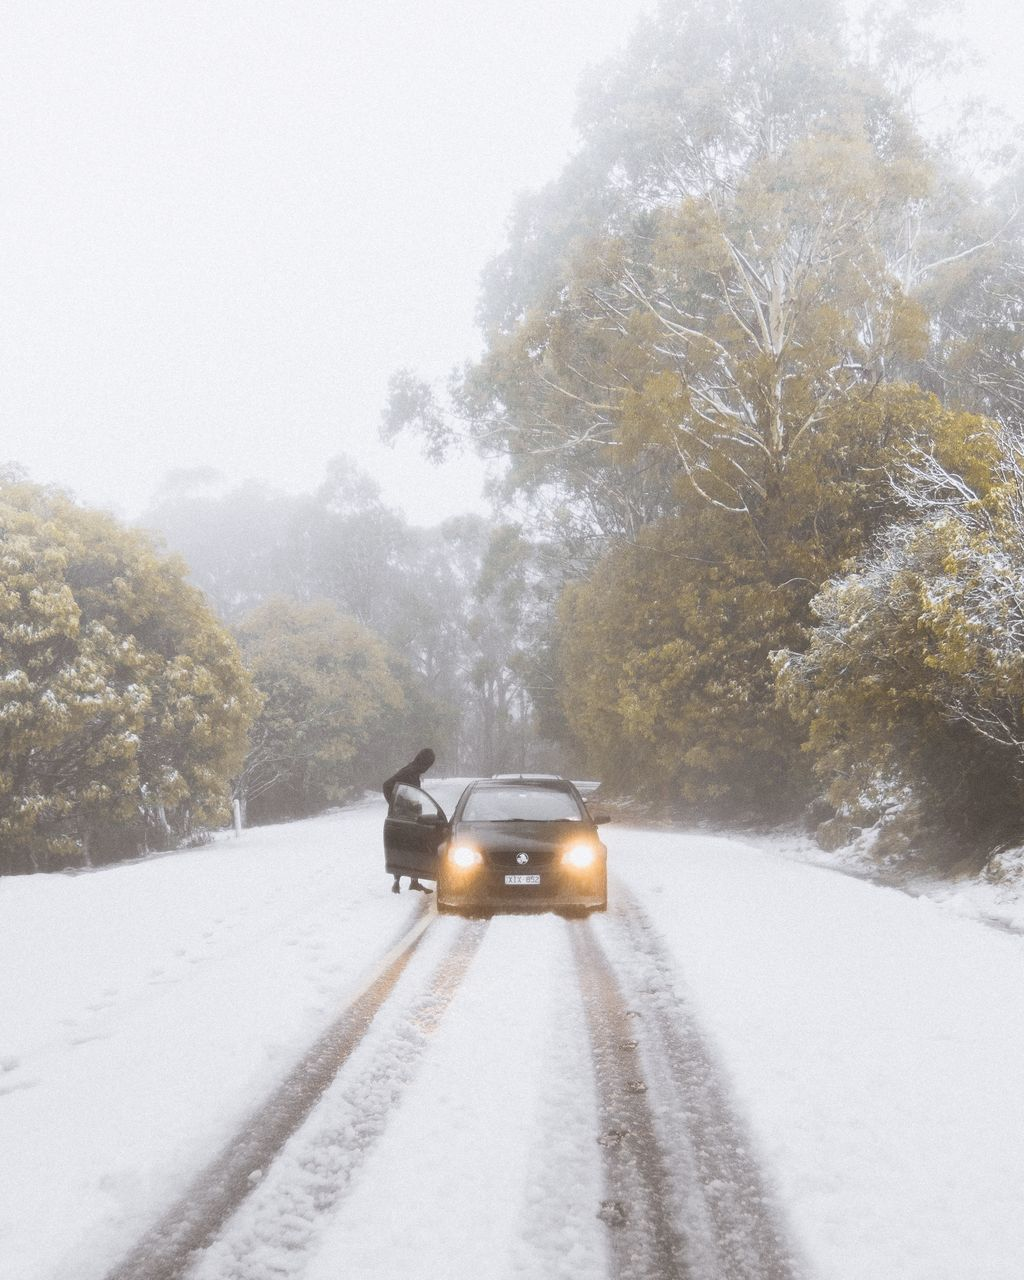 CAR ON ROAD IN WINTER